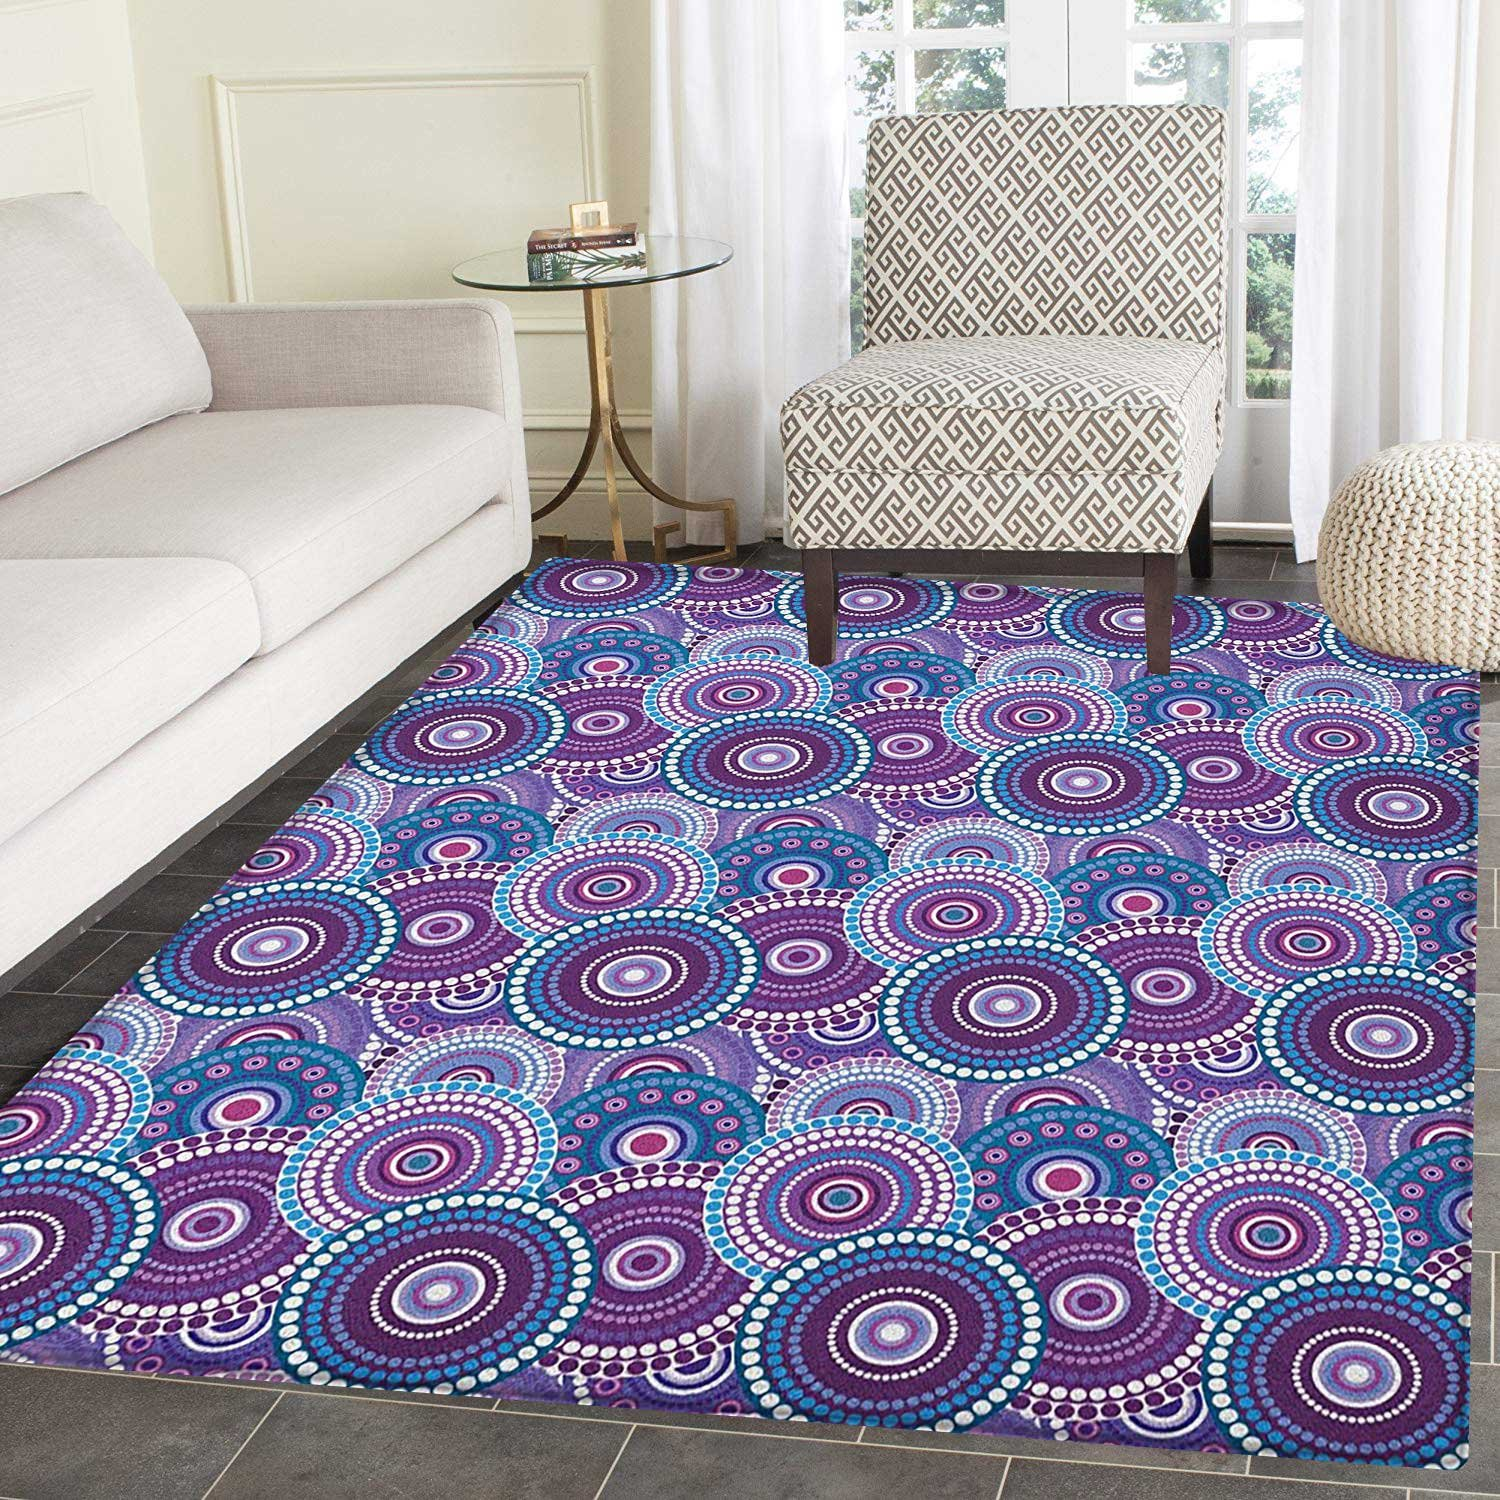 amazon com purple area rug carpet retro circular arrangement with rh amazon com